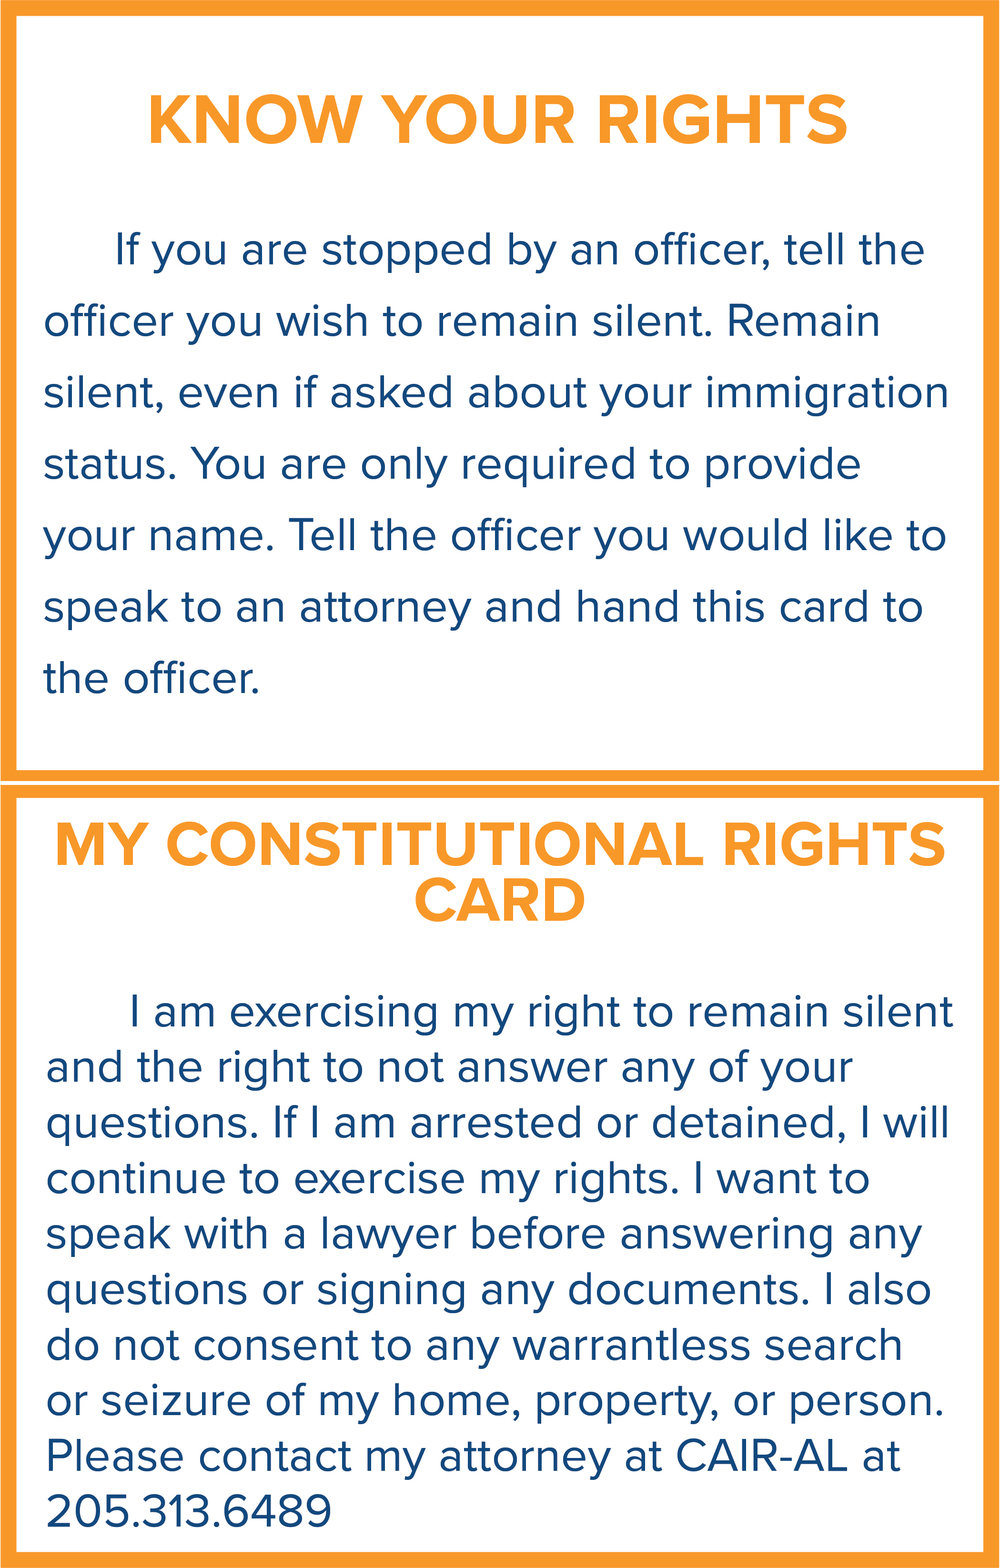 CAIR Know You Rights.jpg